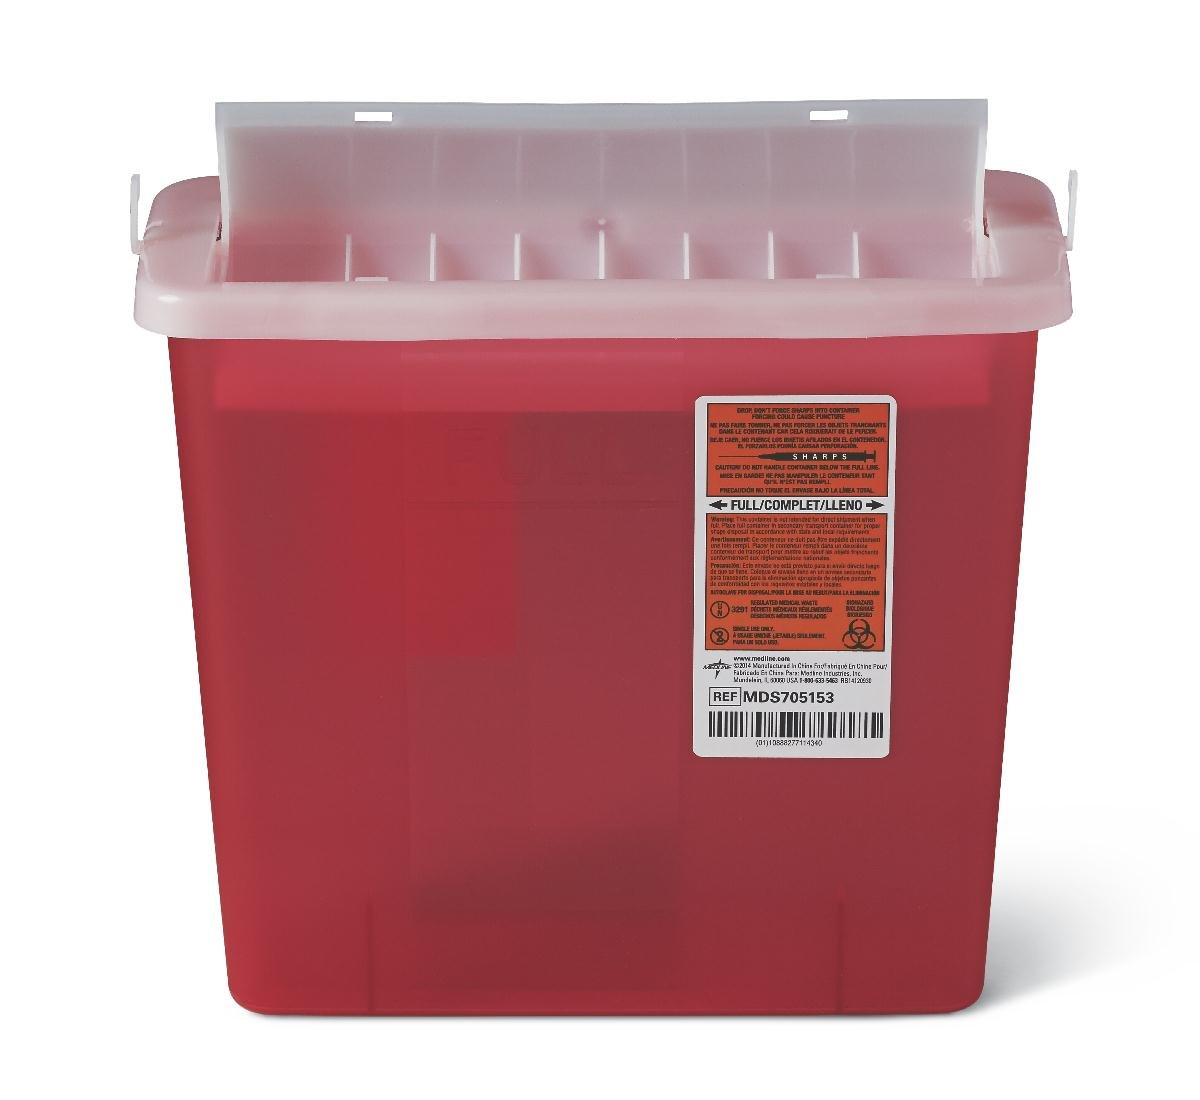 Medline MDS705153H Sharps Container For Patient Room, Plastic, 5qt, Rectangular, Red